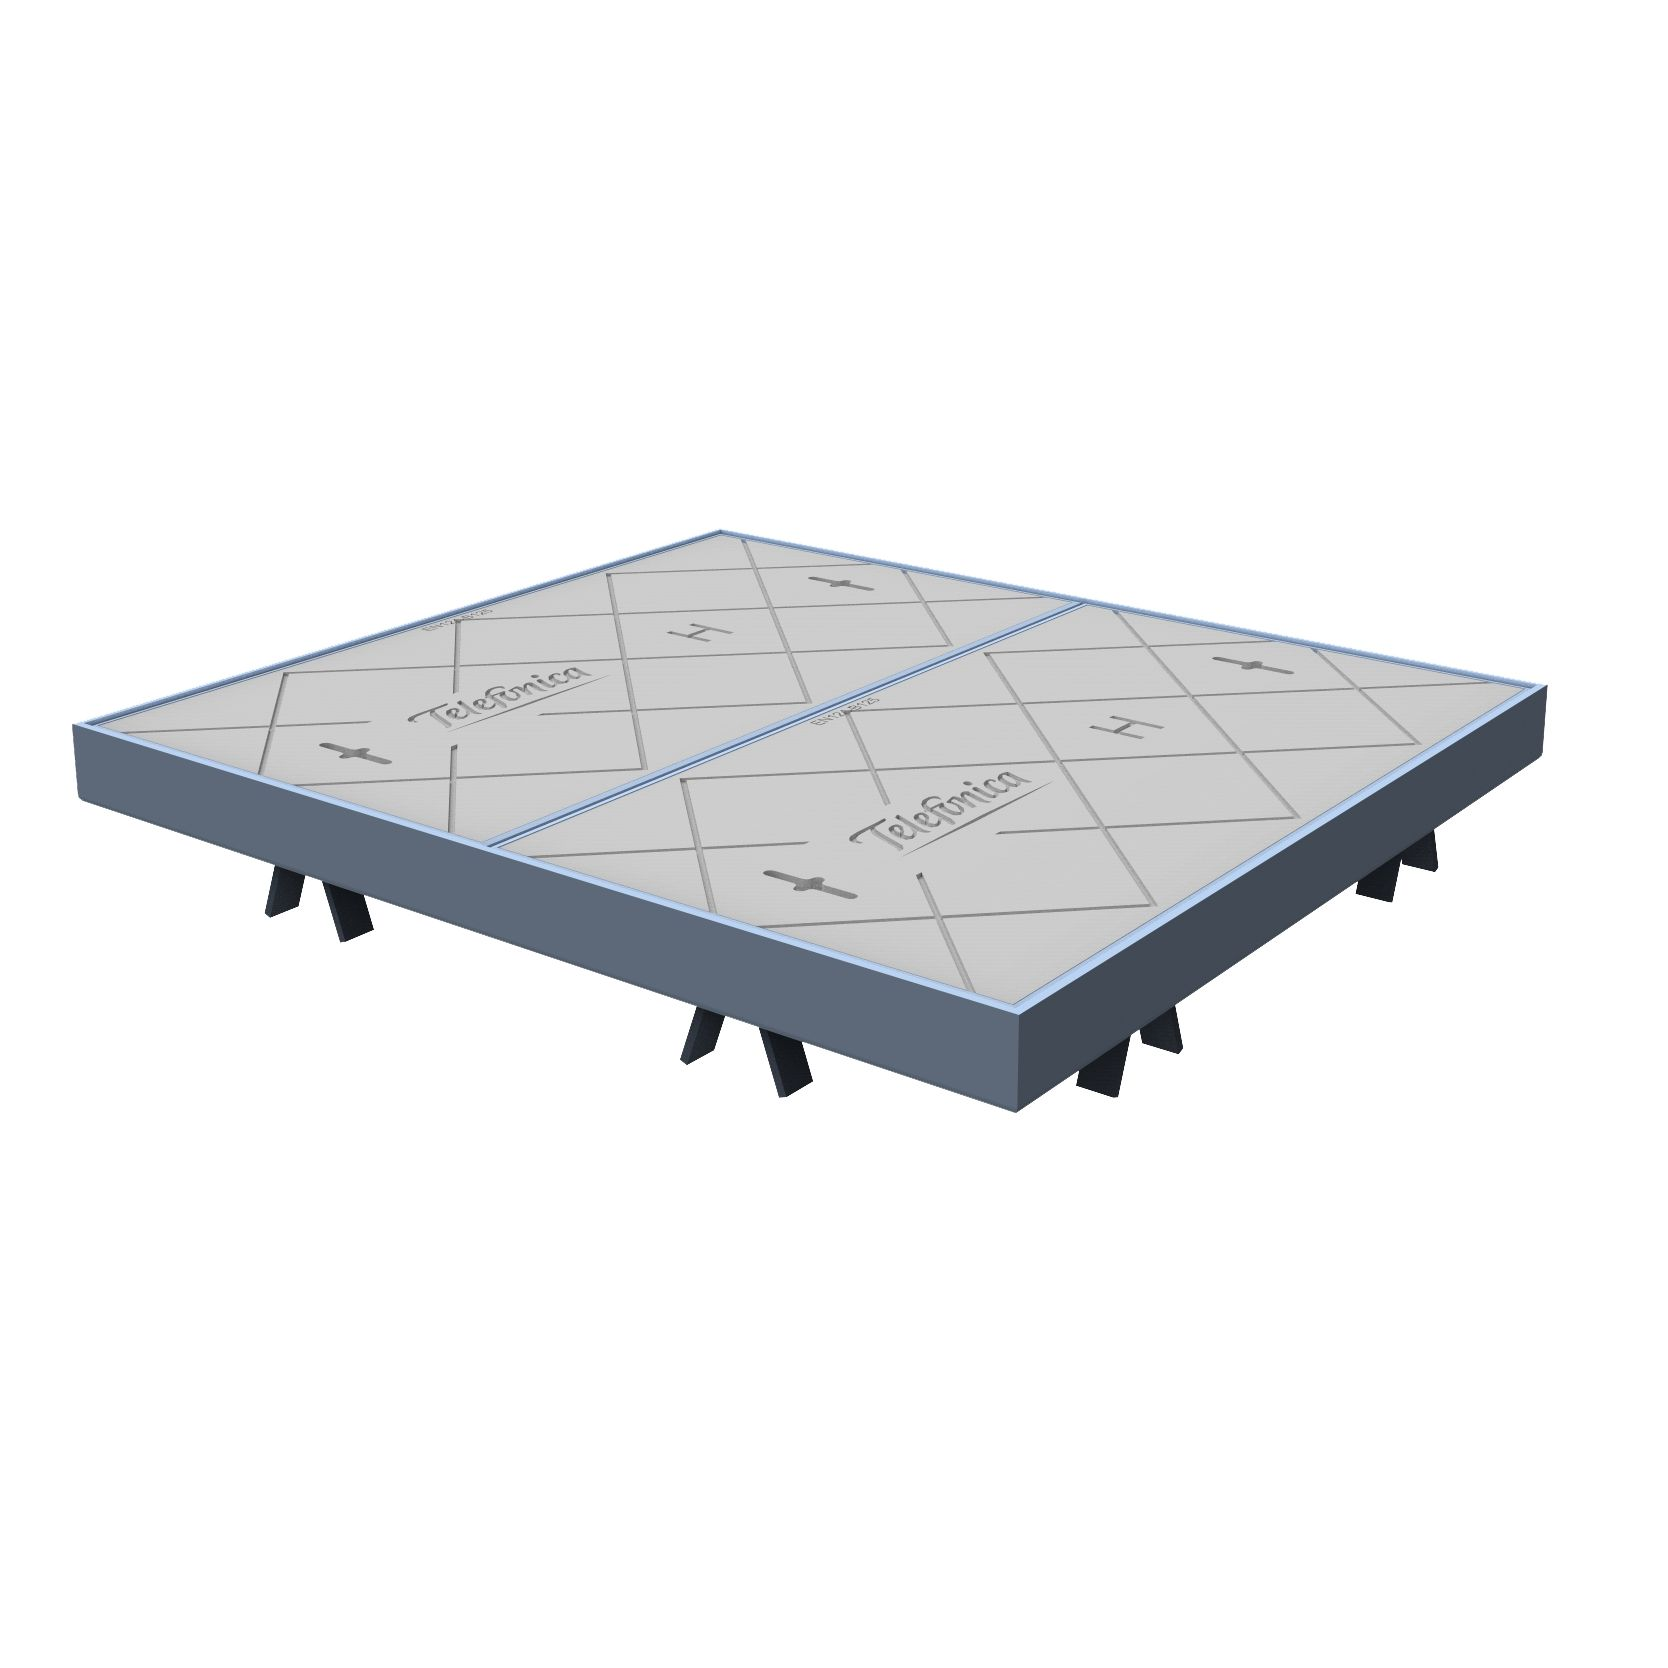 Telephonic Manhole Cover and frame of concrete H